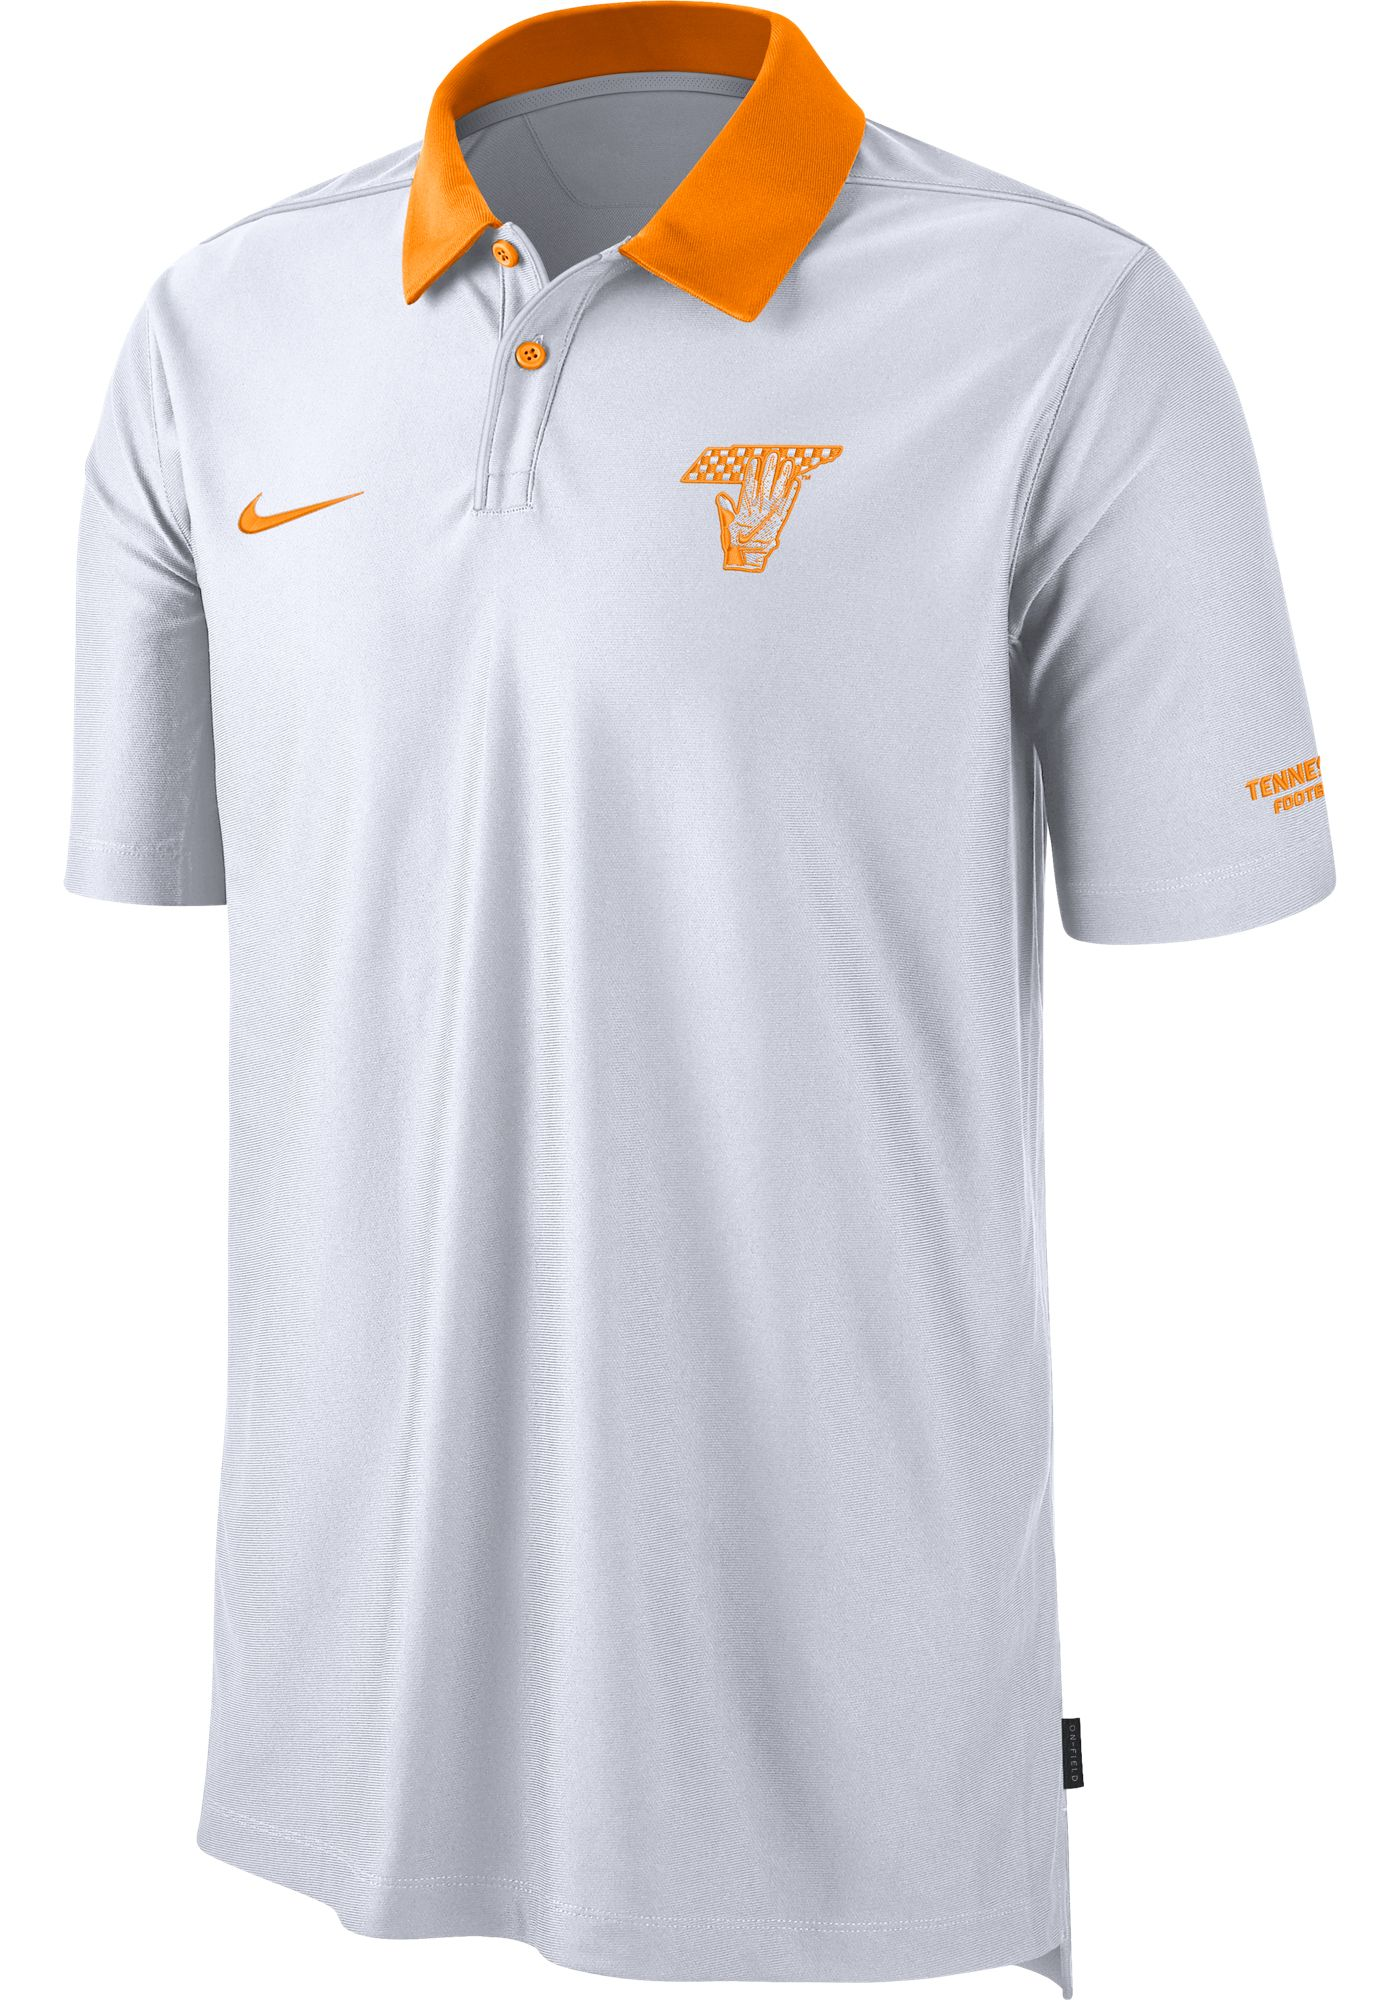 Nike Men's Tennessee Volunteers Dri-FIT Rivalry Football Sideline White Polo